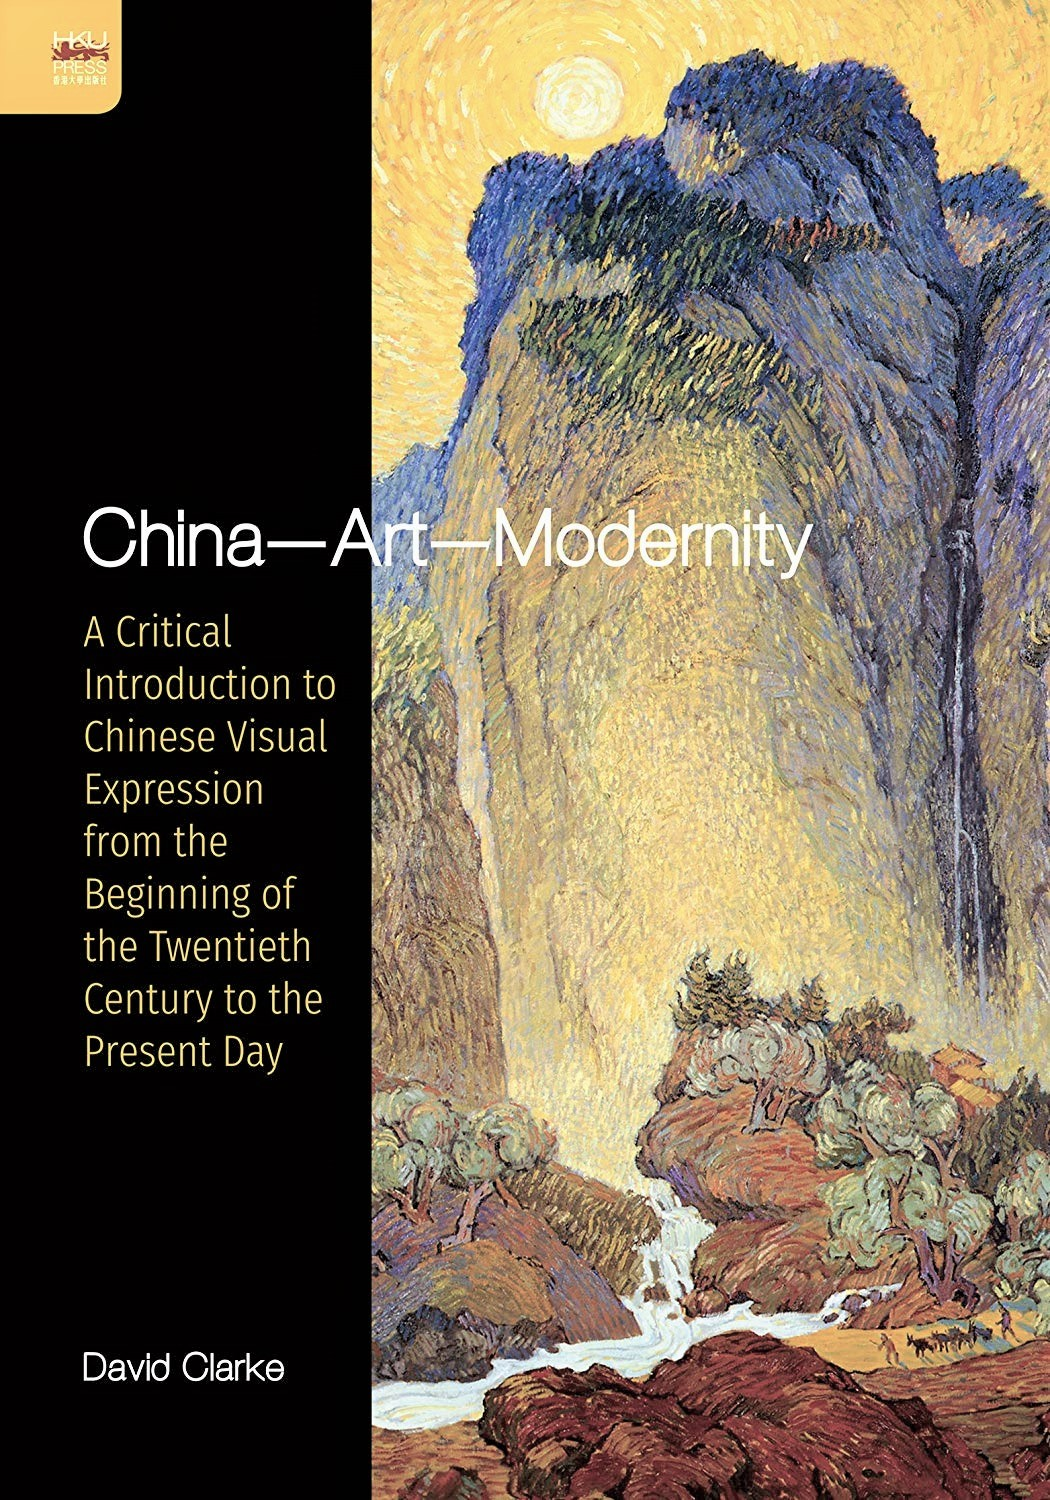 China-art-modernity : a critical introduction to Chinese visual expression from the beginning of the twentieth century to the present day